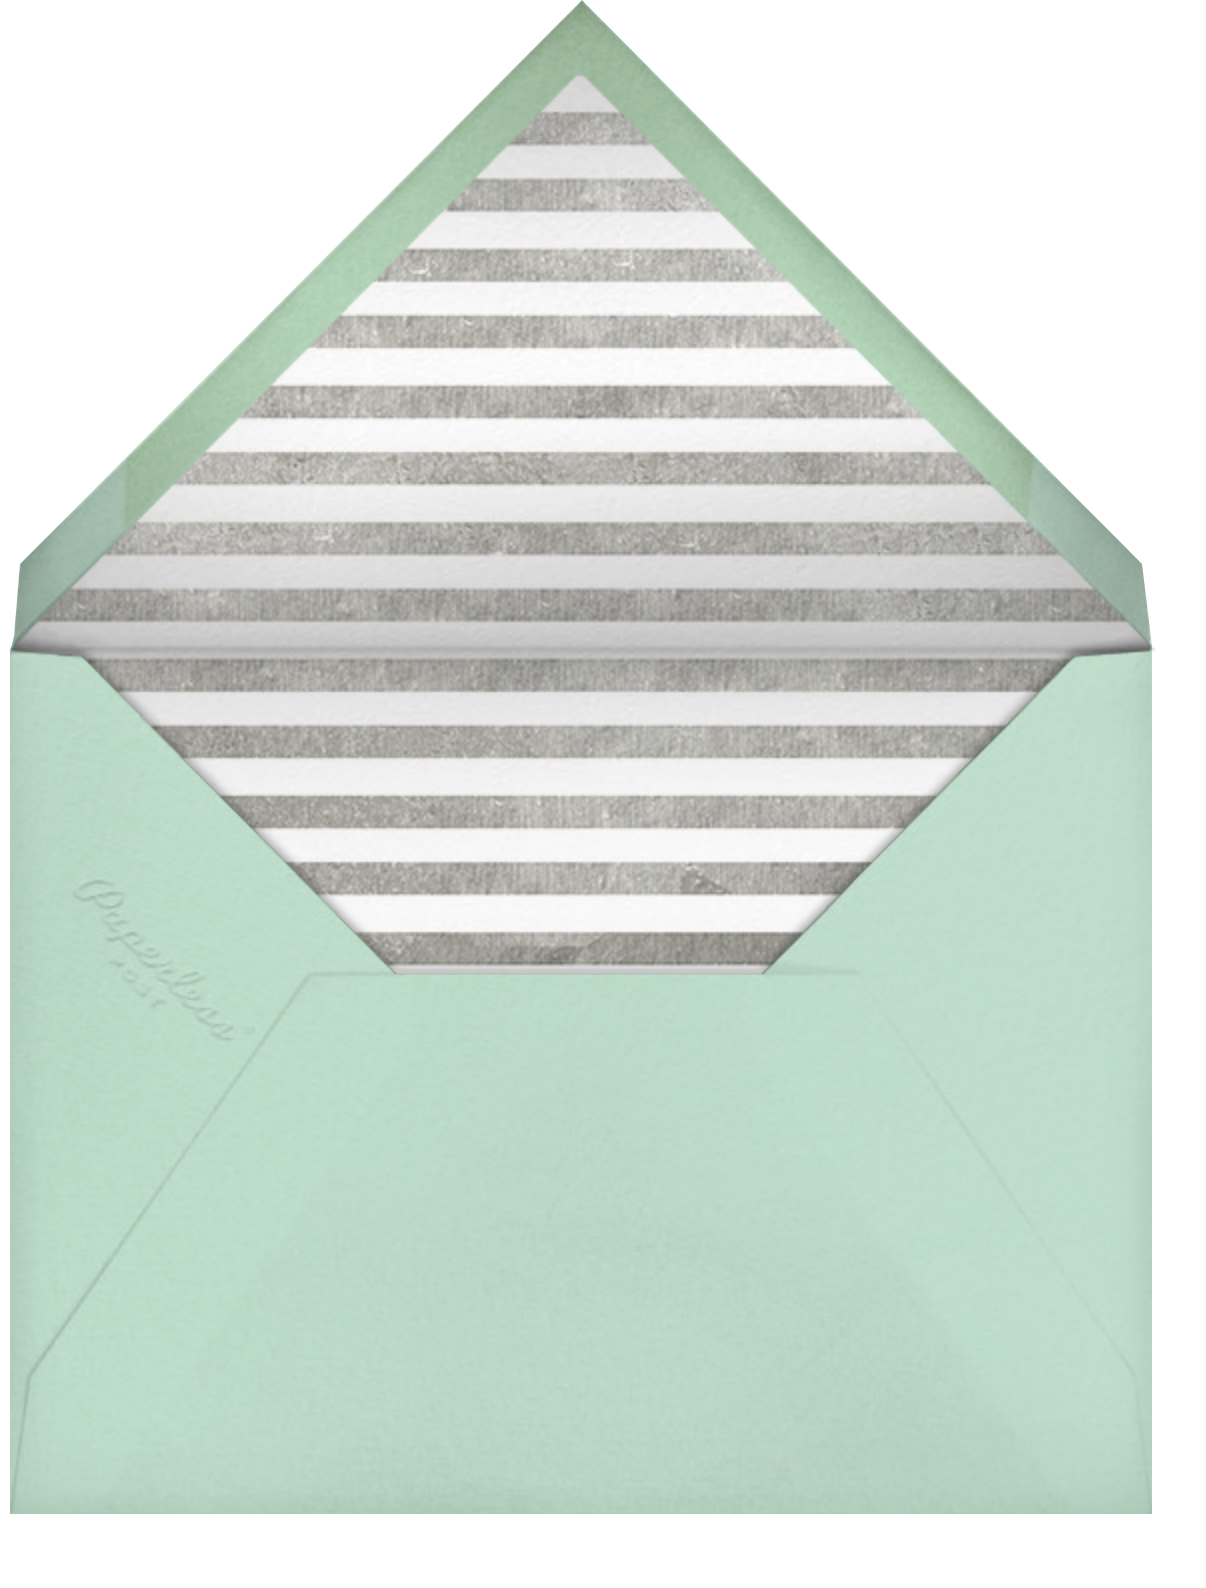 Decade Photo (One Hundred) - Silver - Paperless Post - Envelope